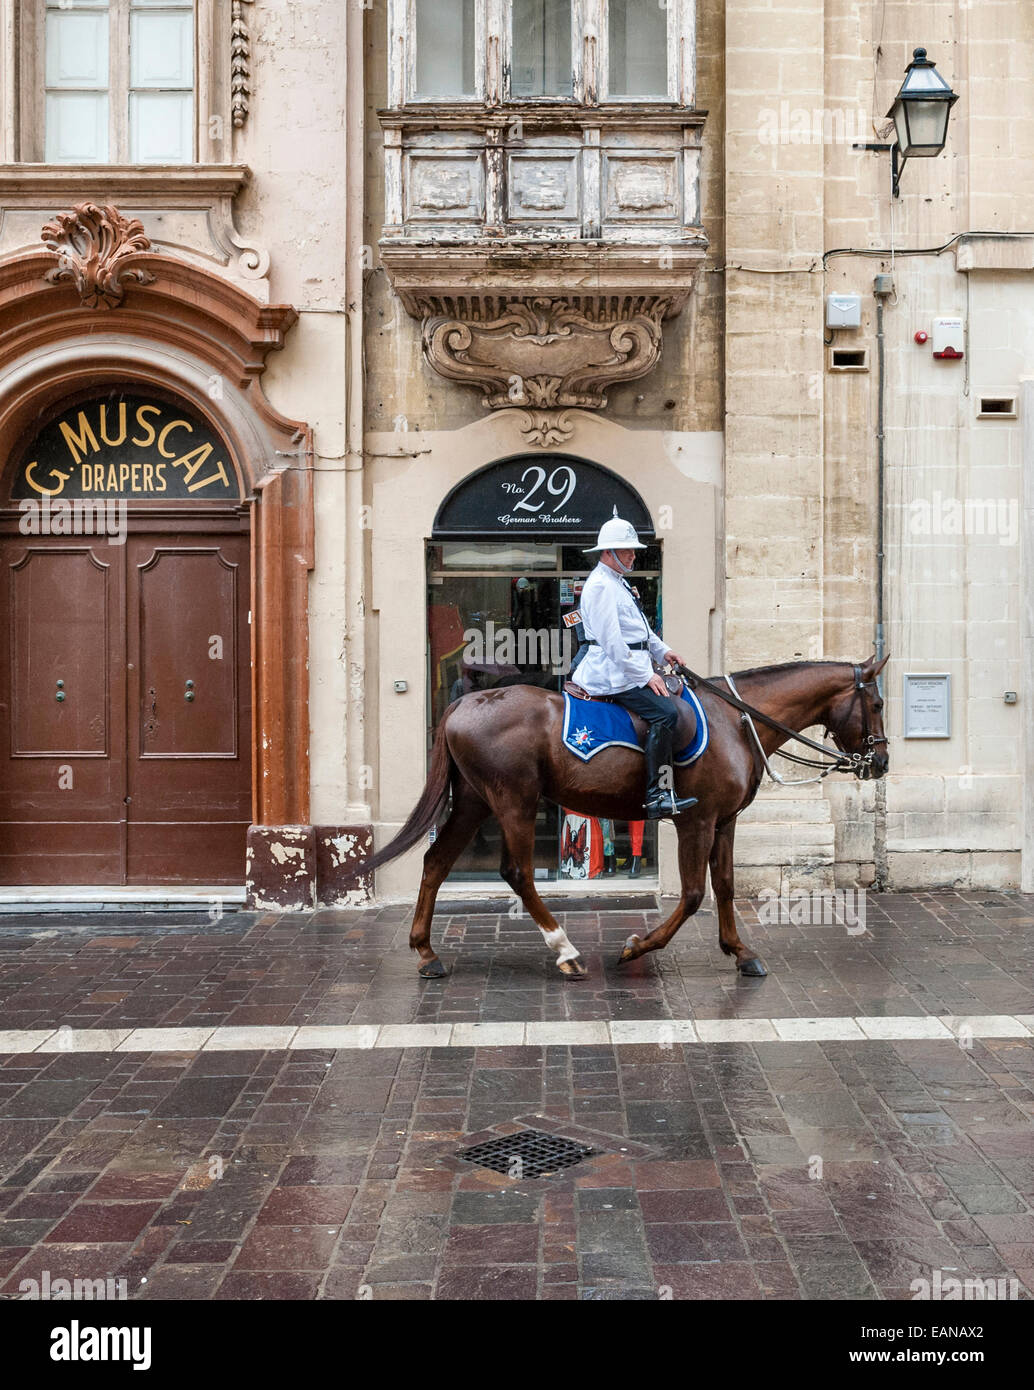 Valletta, Malta. A mounted policeman riding through the street past old shops - Stock Image